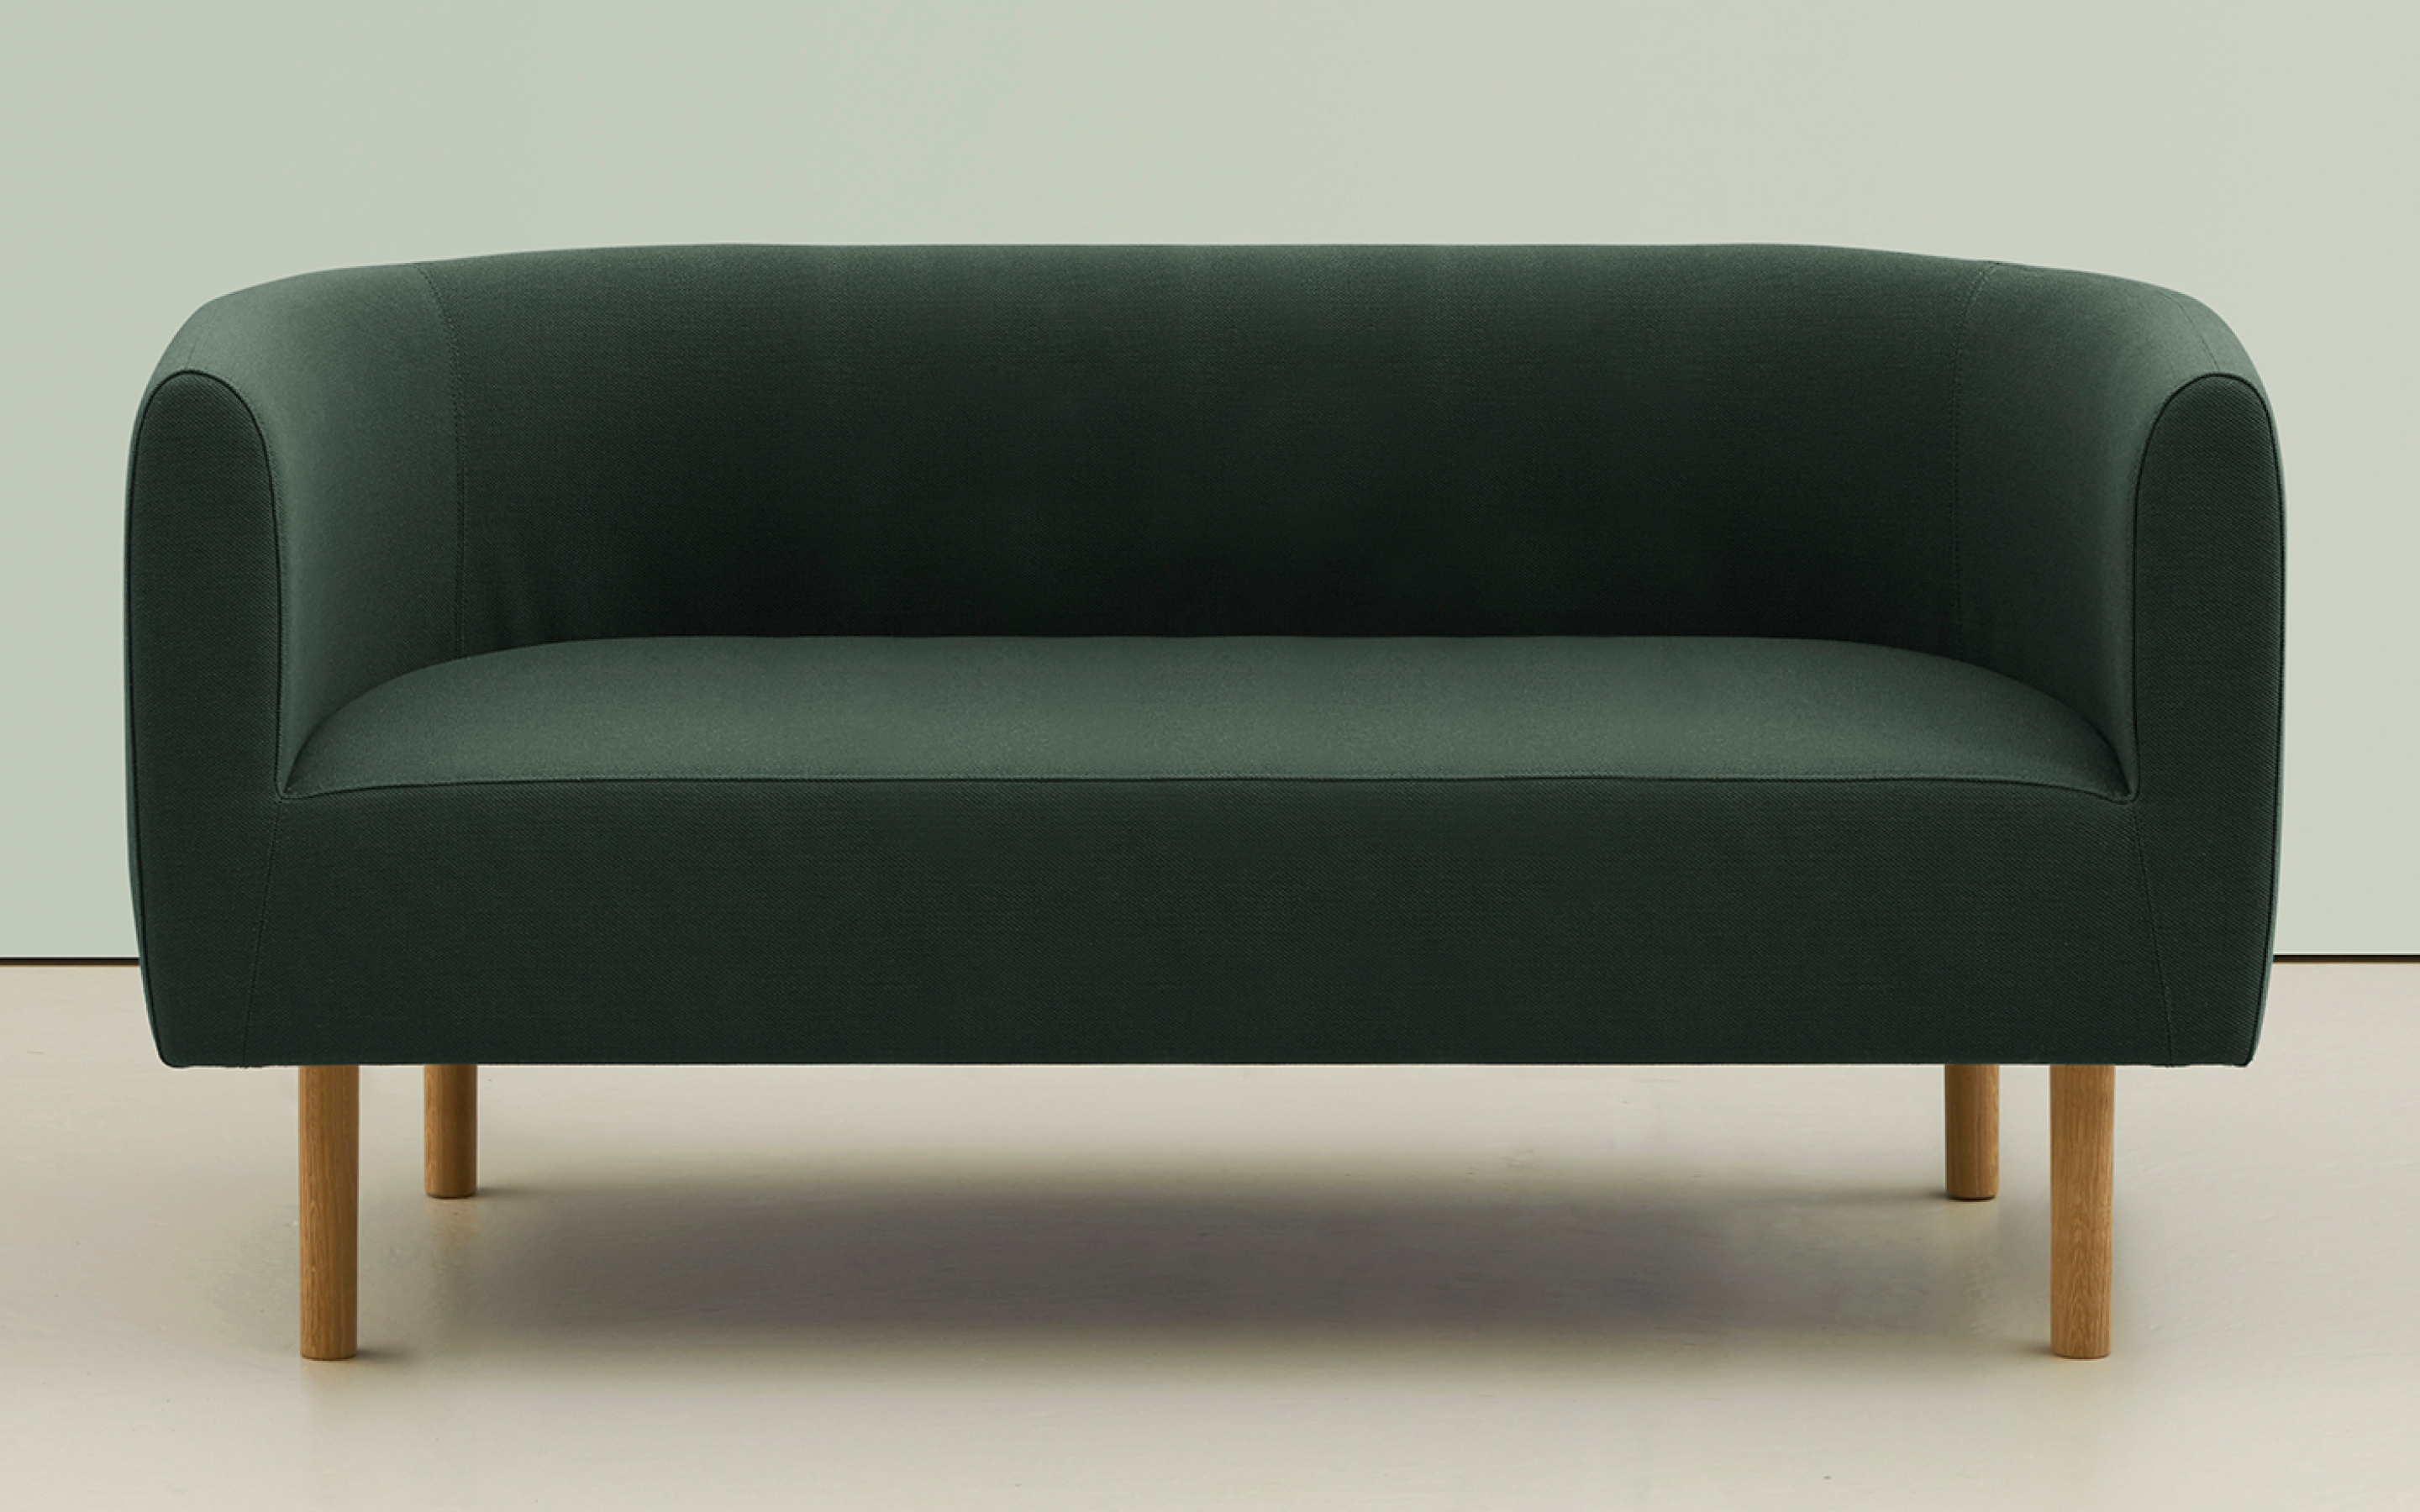 Green hm45b Juno sofa with curved backrest and solid wood feet